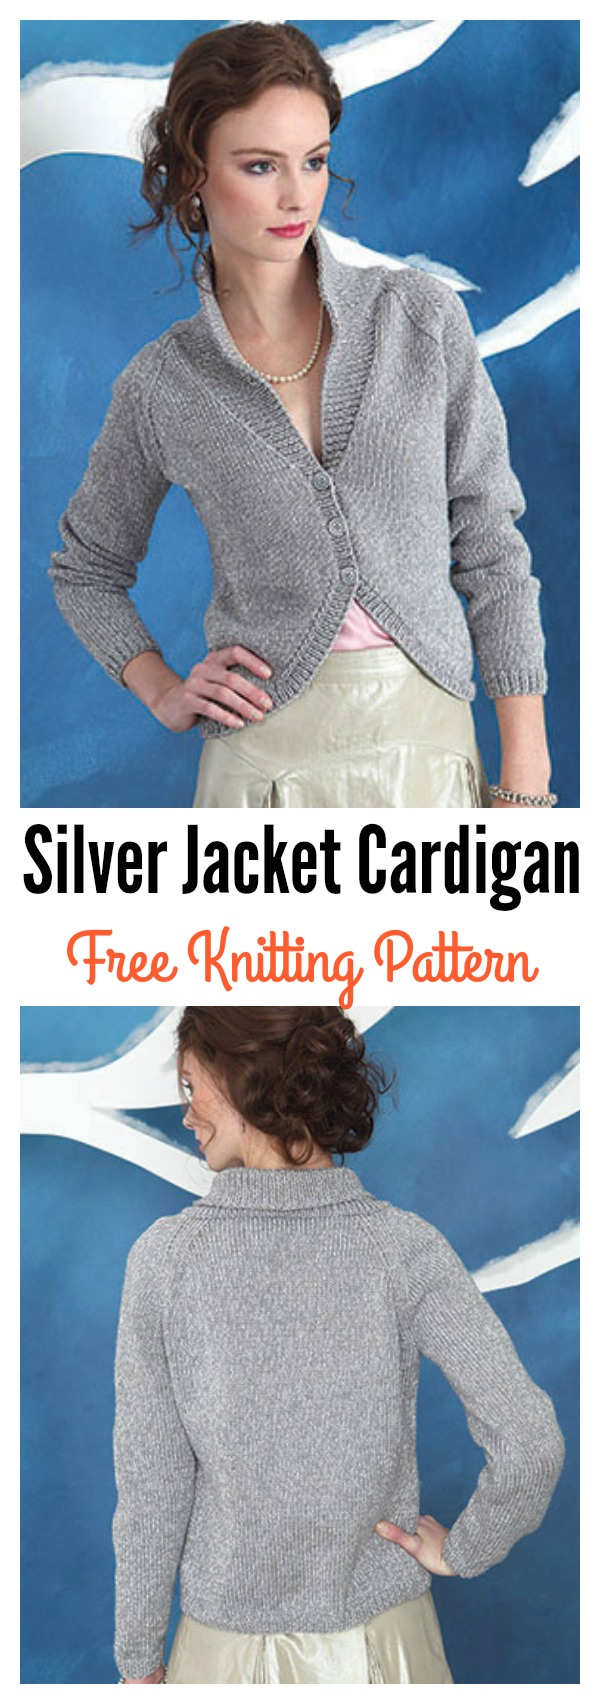 Silver Jacket Cardigan Free Knitting Pattern